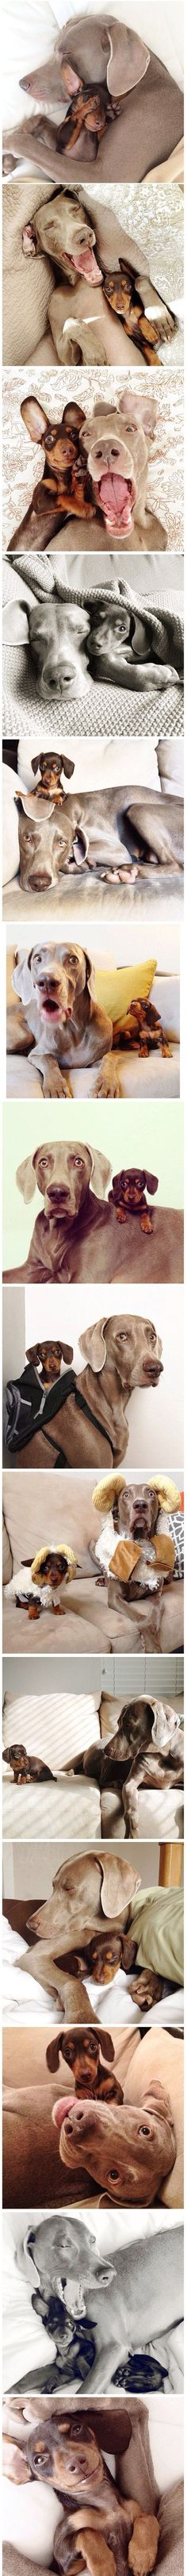 Weimeraner's are THE MOST beautiful dogs!! i want one so bad! They make me happy